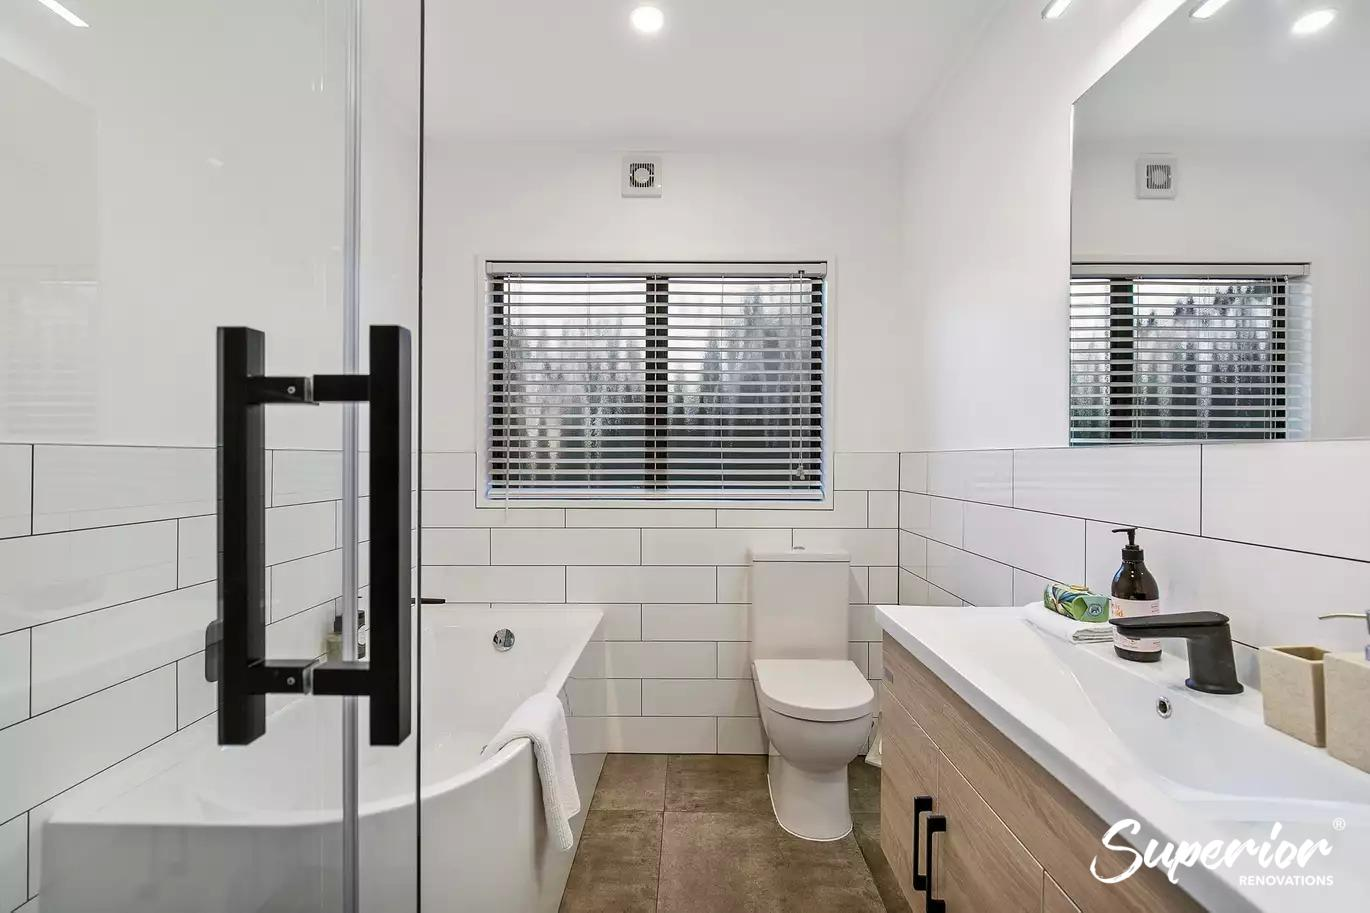 18 Top Tile Trends In Bathroom Design For 2021 - NZ Edition